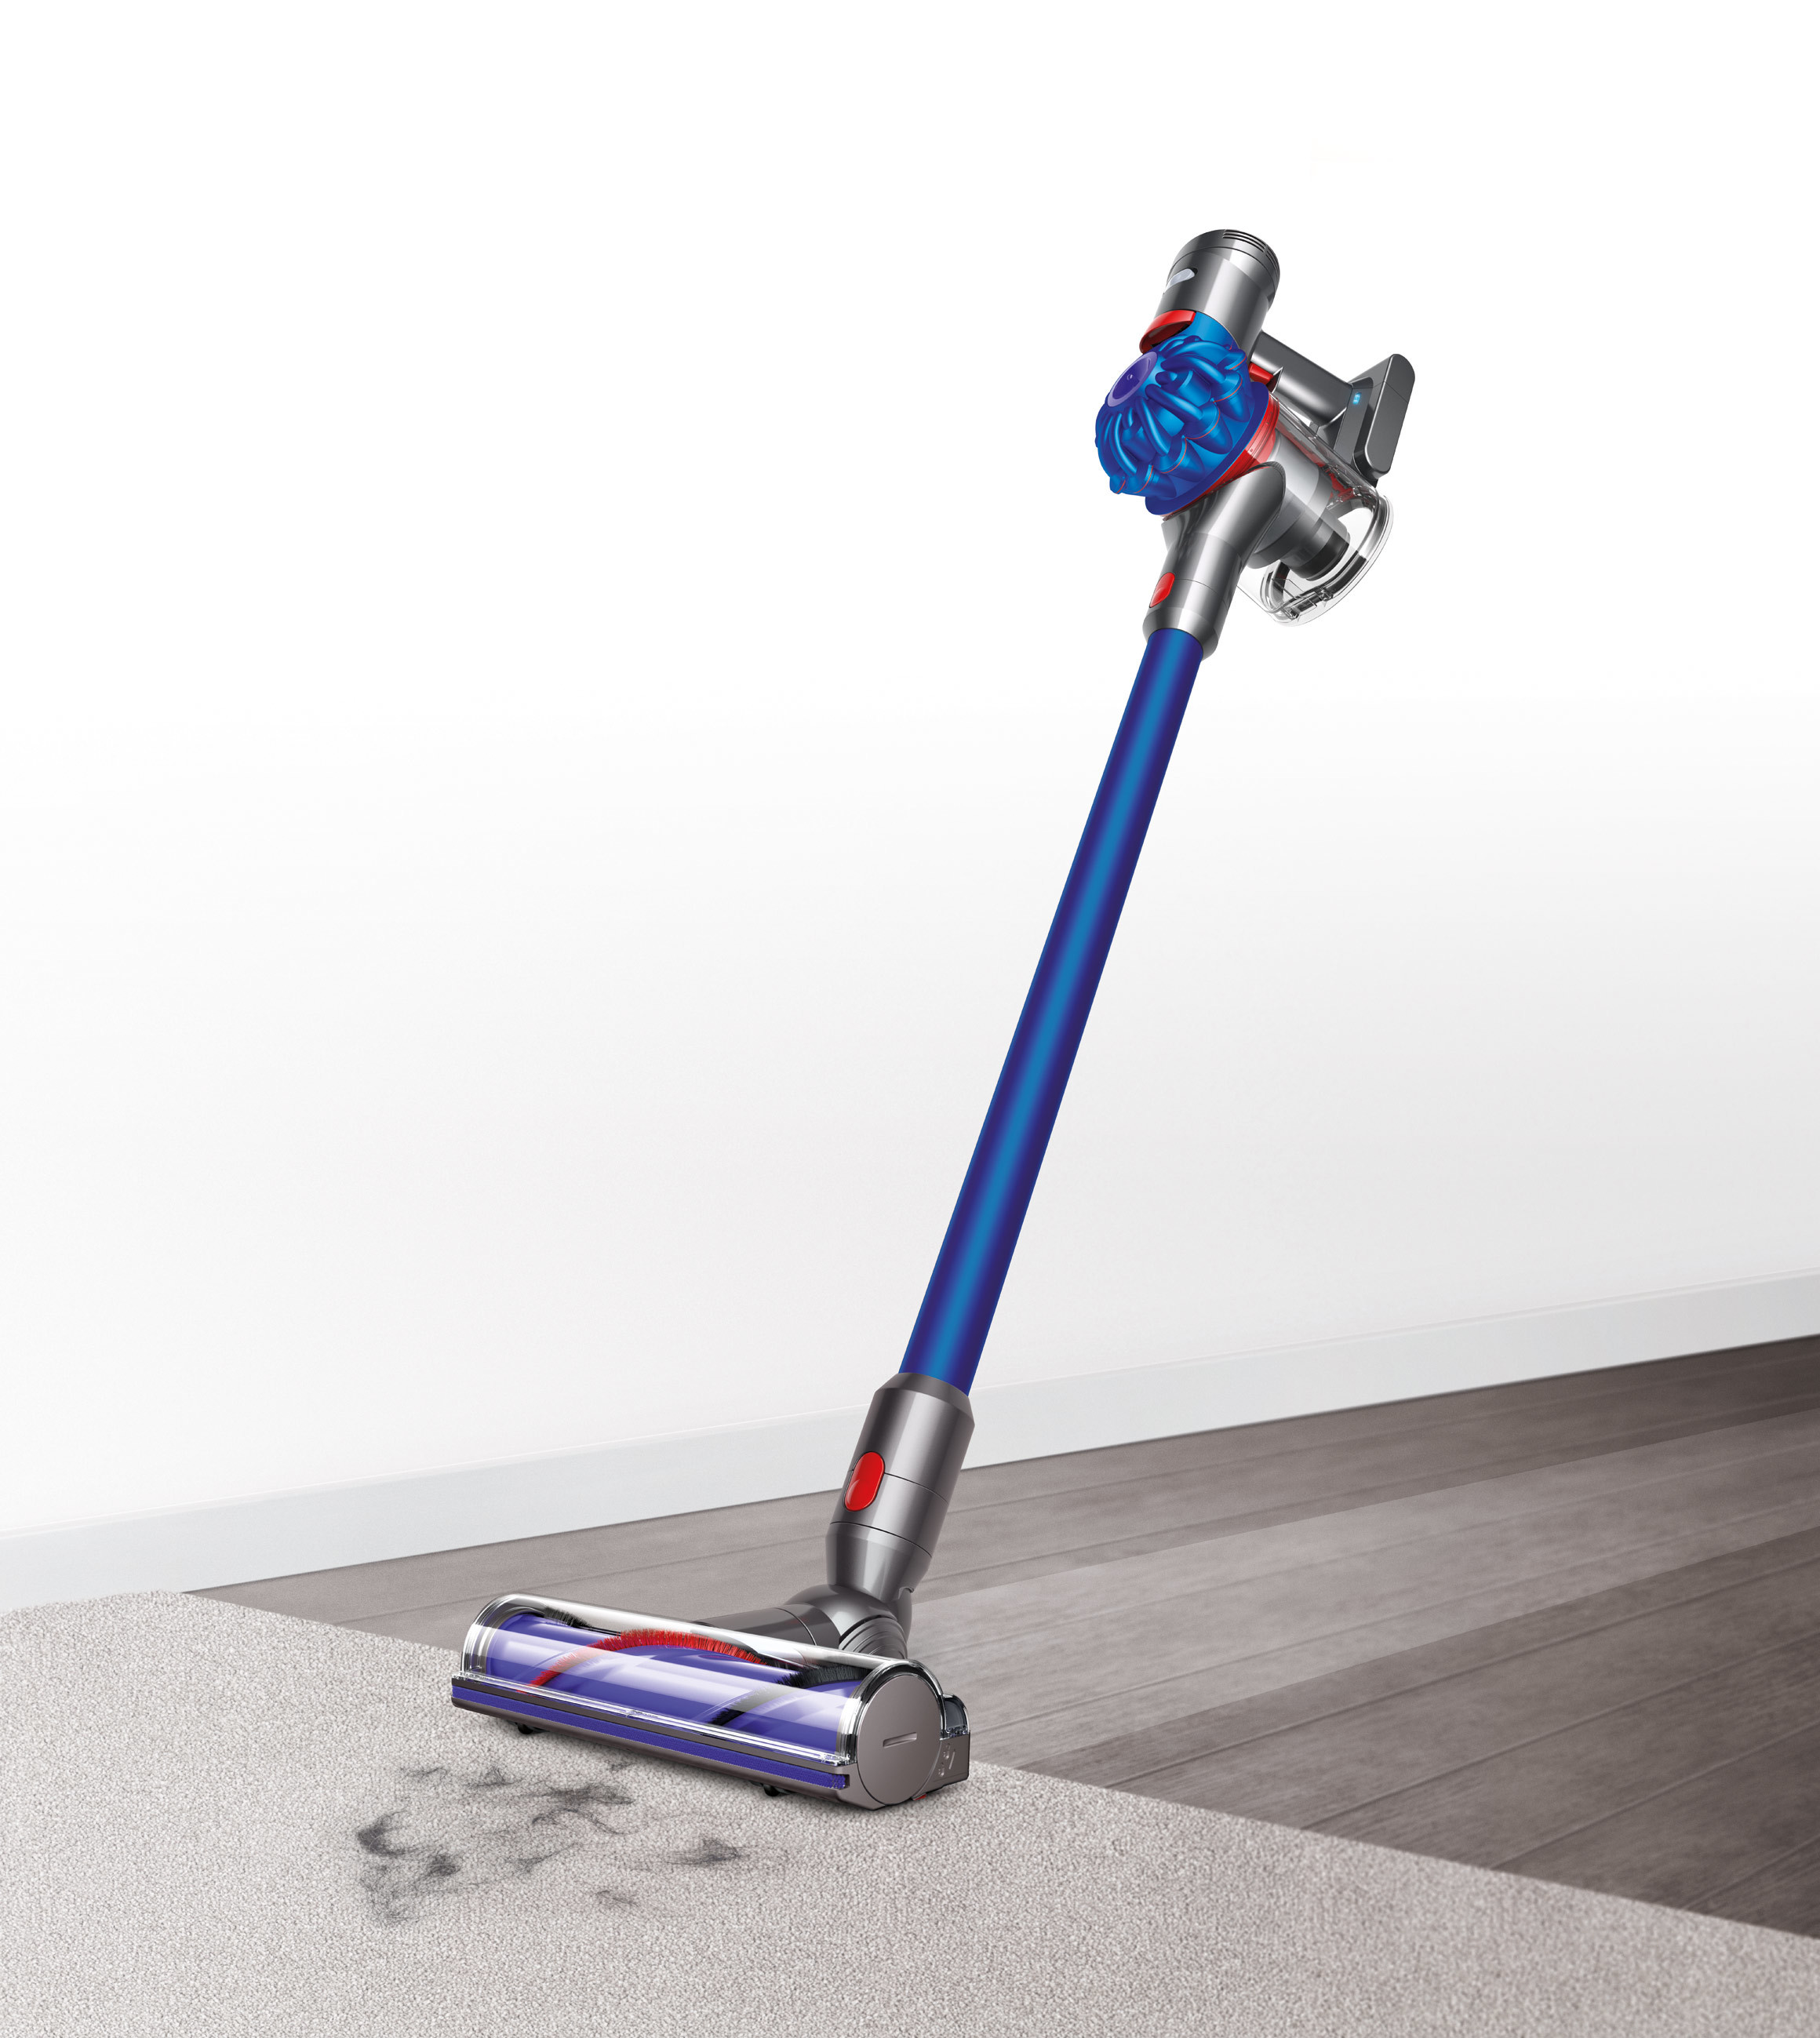 dyson aspirateur balai sans fil v7 motorhead origin. Black Bedroom Furniture Sets. Home Design Ideas